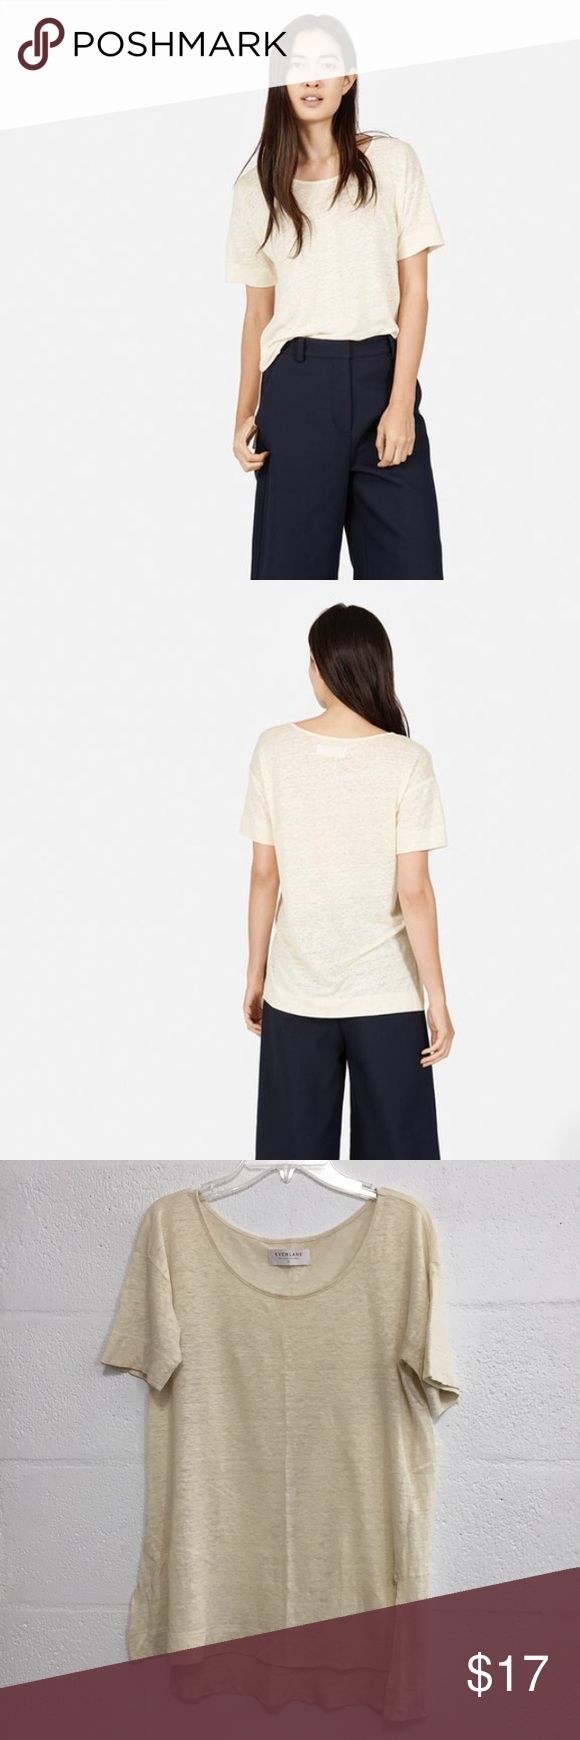 Everlane Linen Short-Sleeve Tee Sz XS Everlane Linen Short-Sleeve Tee in cream, size extra small. Relaxed fit so this could work for a small as well. Great condition, no issues. No longer available on their website. First two pictures are stock to show the fit. Everlane Tops Tees - Short Sleeve